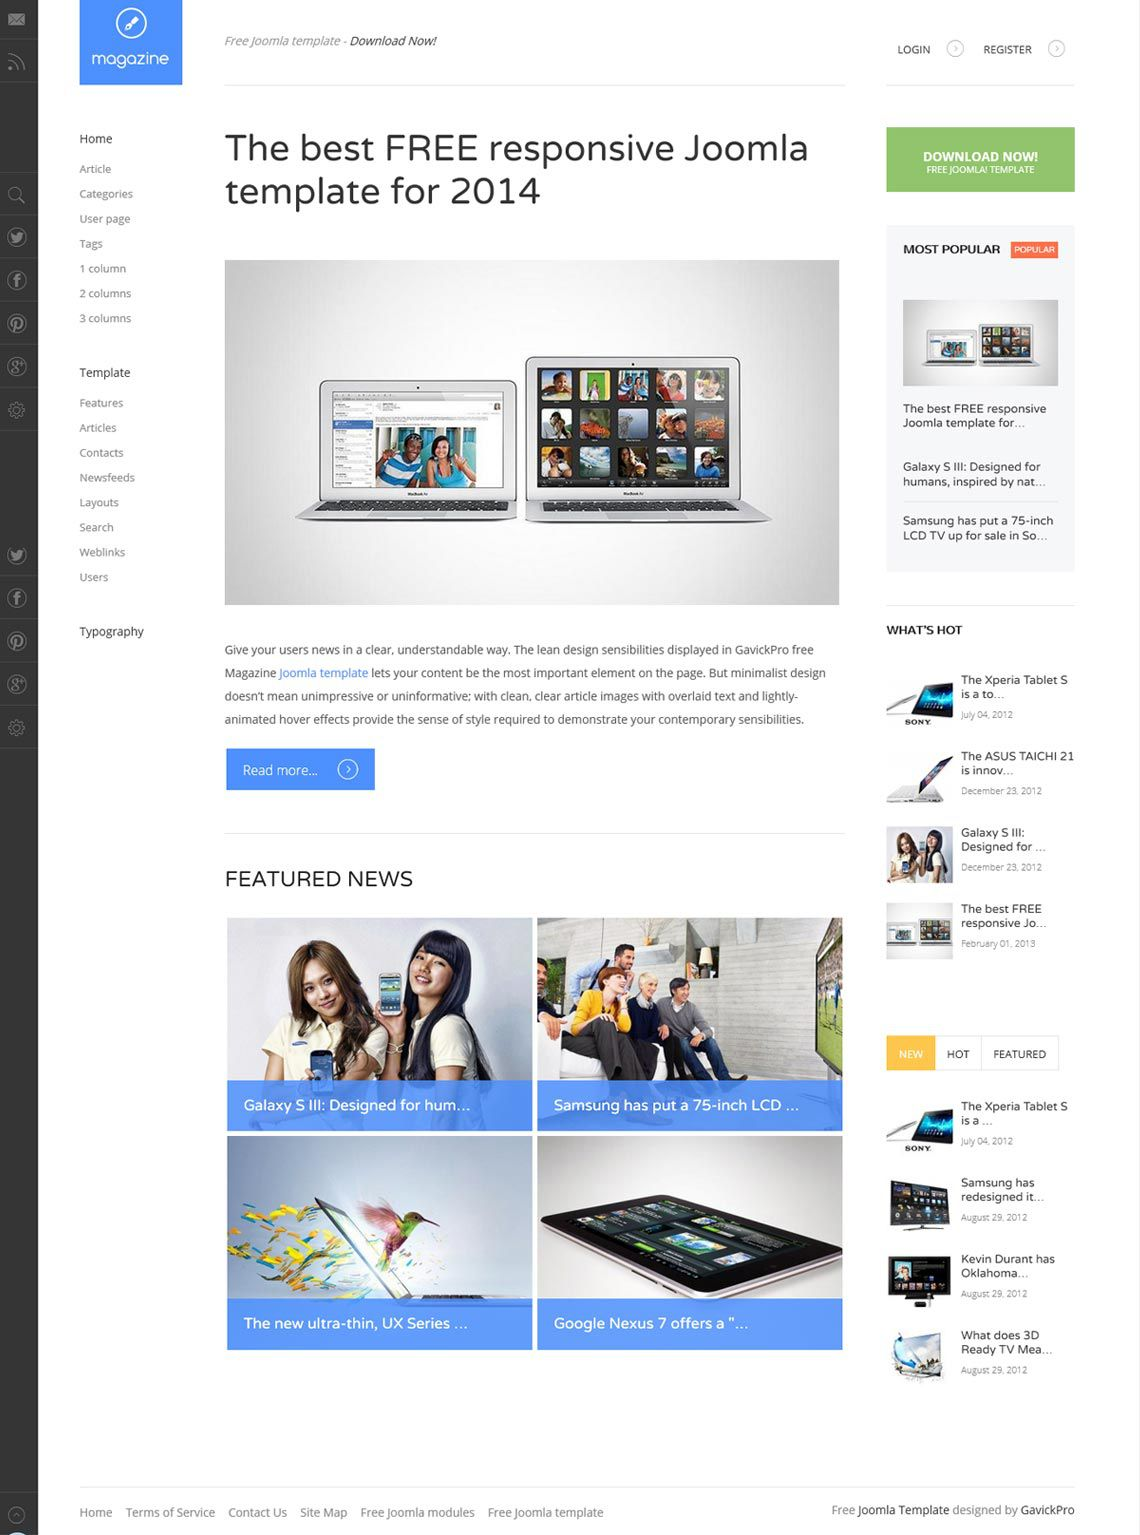 005 Remarkable Joomla Responsive Template Free Picture  3.0 Download Busines 3Full